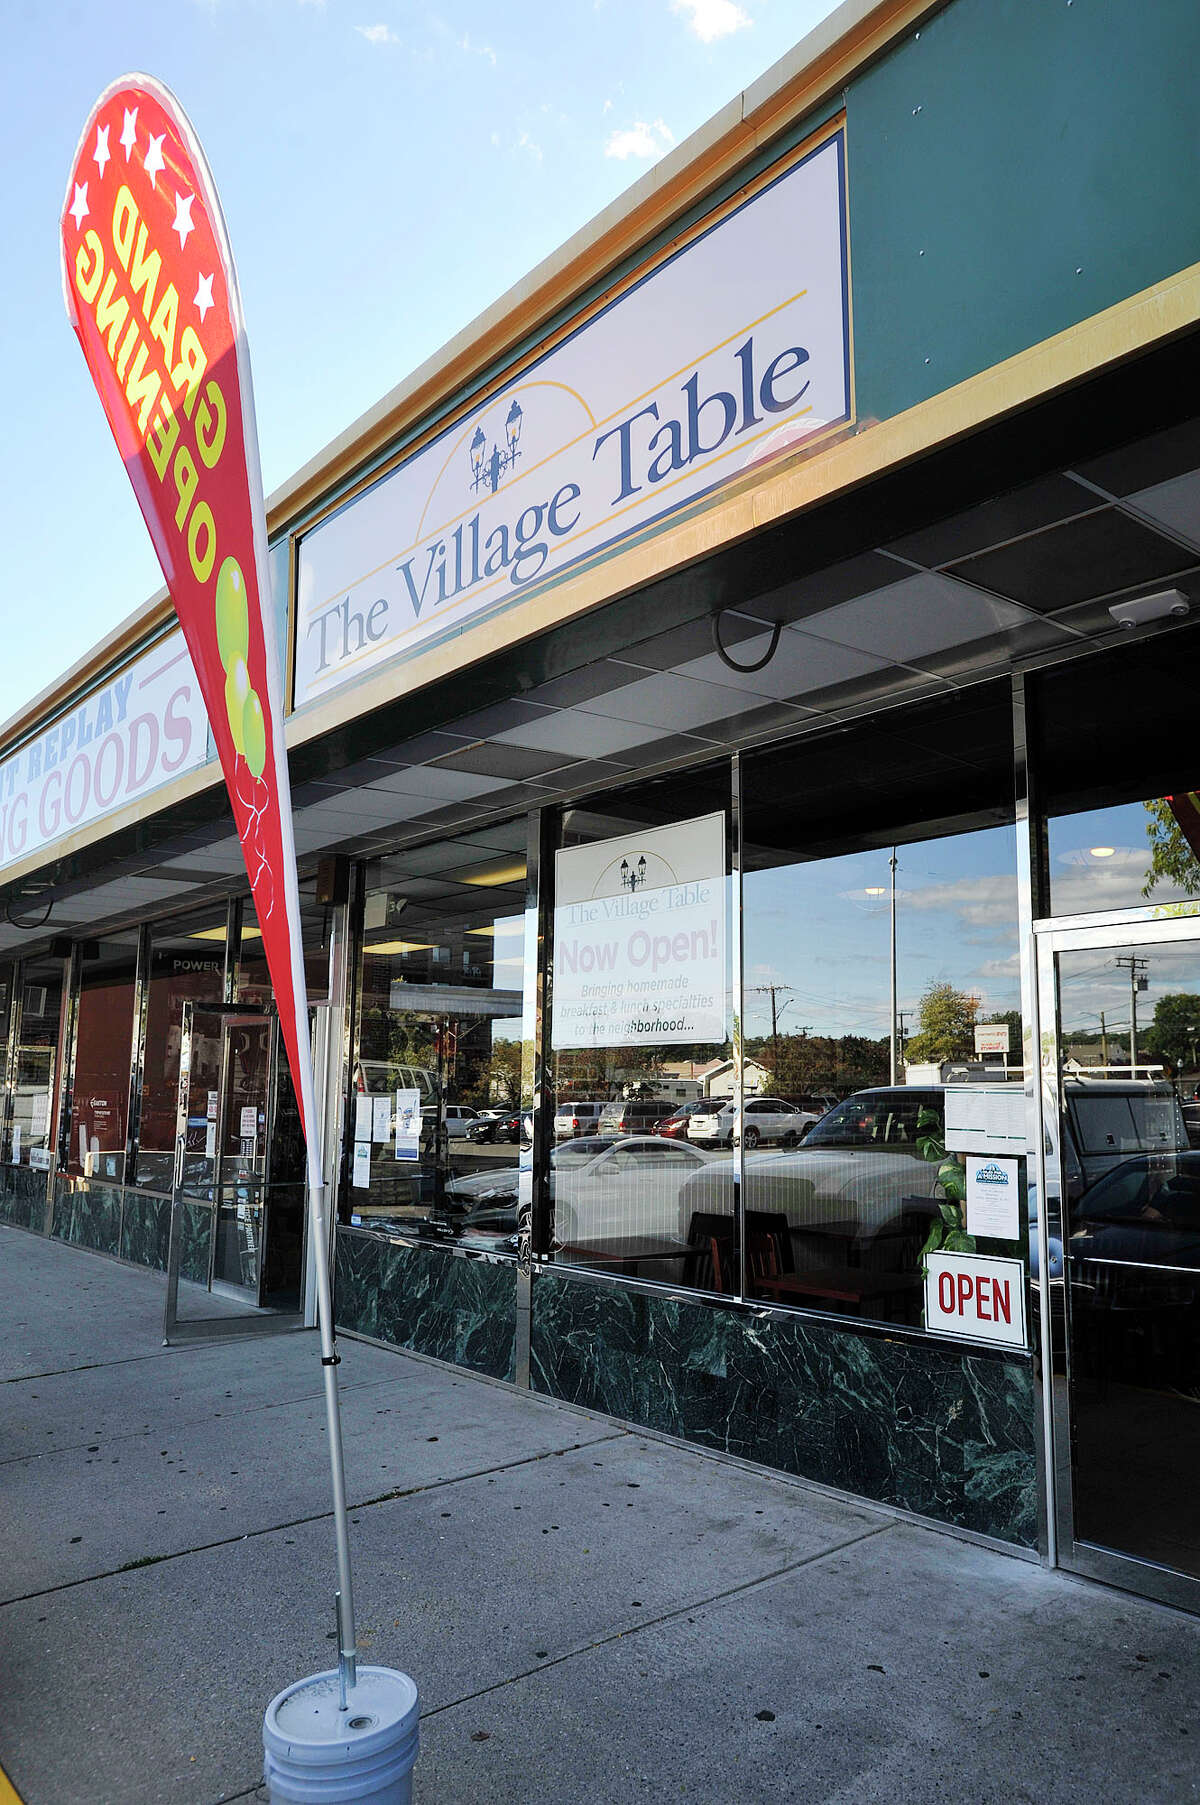 The exterior of The Village Table restaurant is seen among other shops in the Springdale Shopping Center in the Springdale section of Stamford, Conn., on Monday, Sept. 22, 2014. The Village Table opened three weeks ago where Kim's Kitchen used to be and offers breakfast and lunch and is open late on select days for dinner.